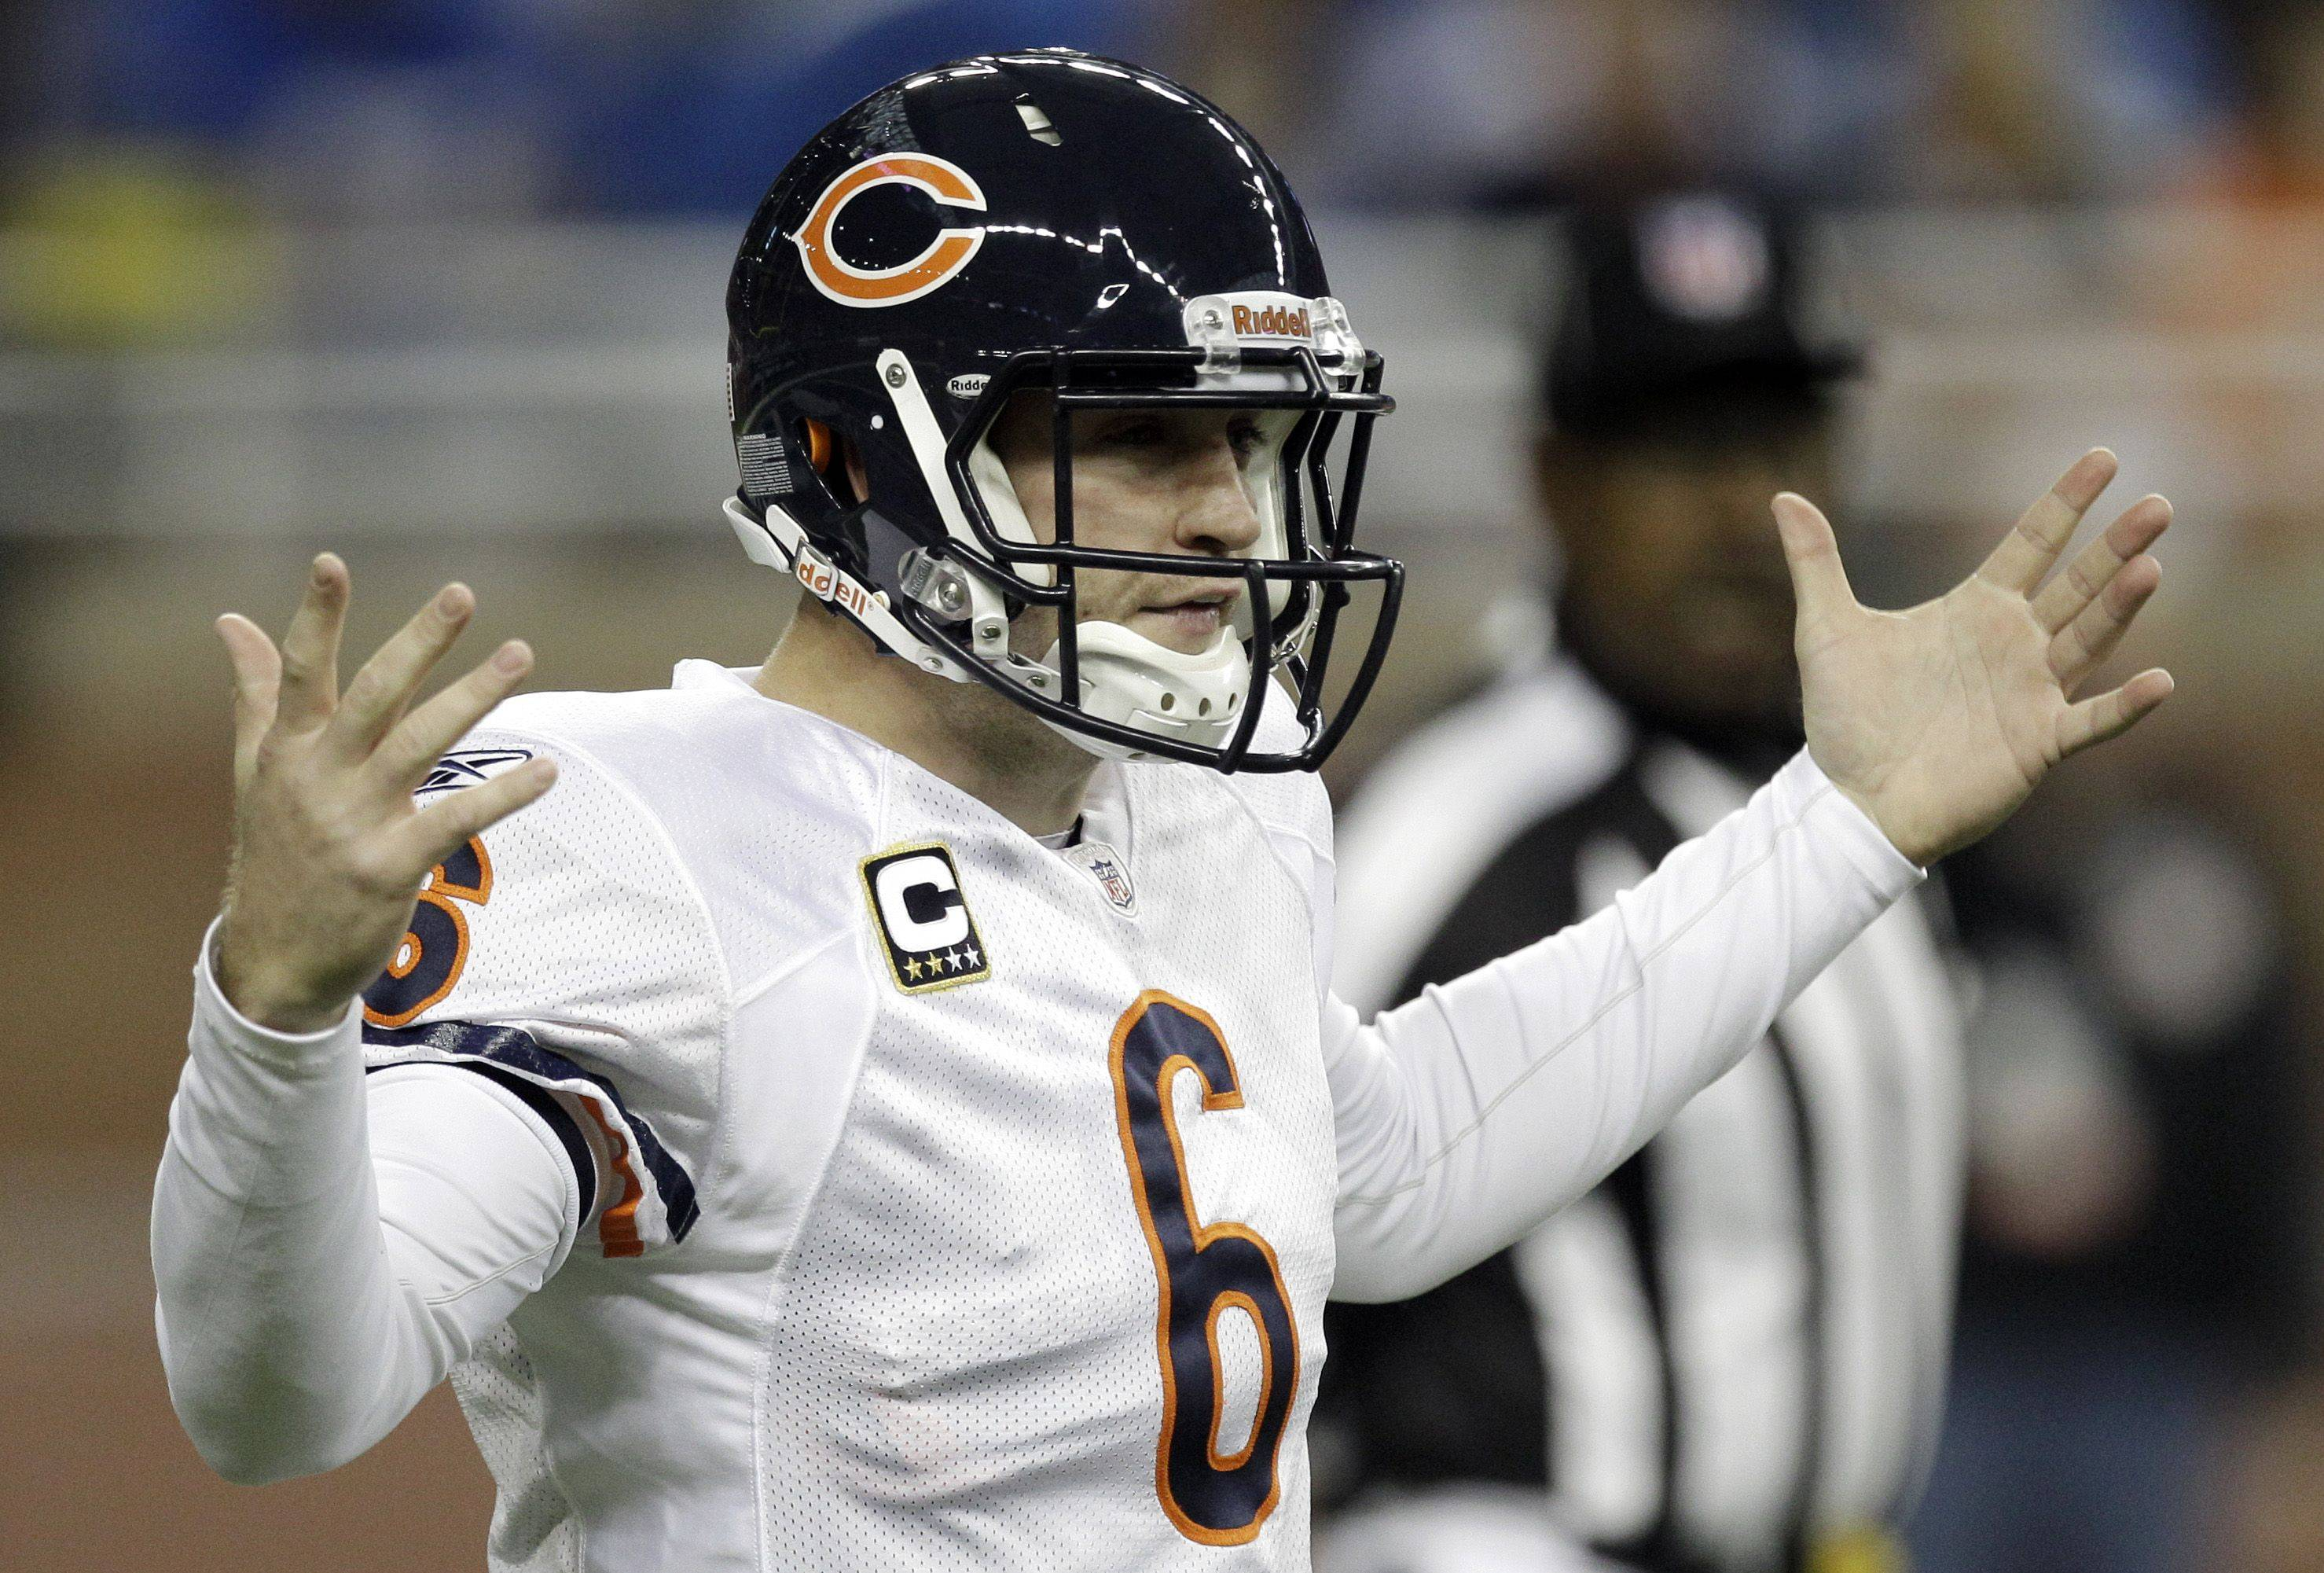 Chicago Bears quarterback Jay Cutler reacts to waiting for a play to be sent from the sidelines against the Detroit Lions in the first quarter.